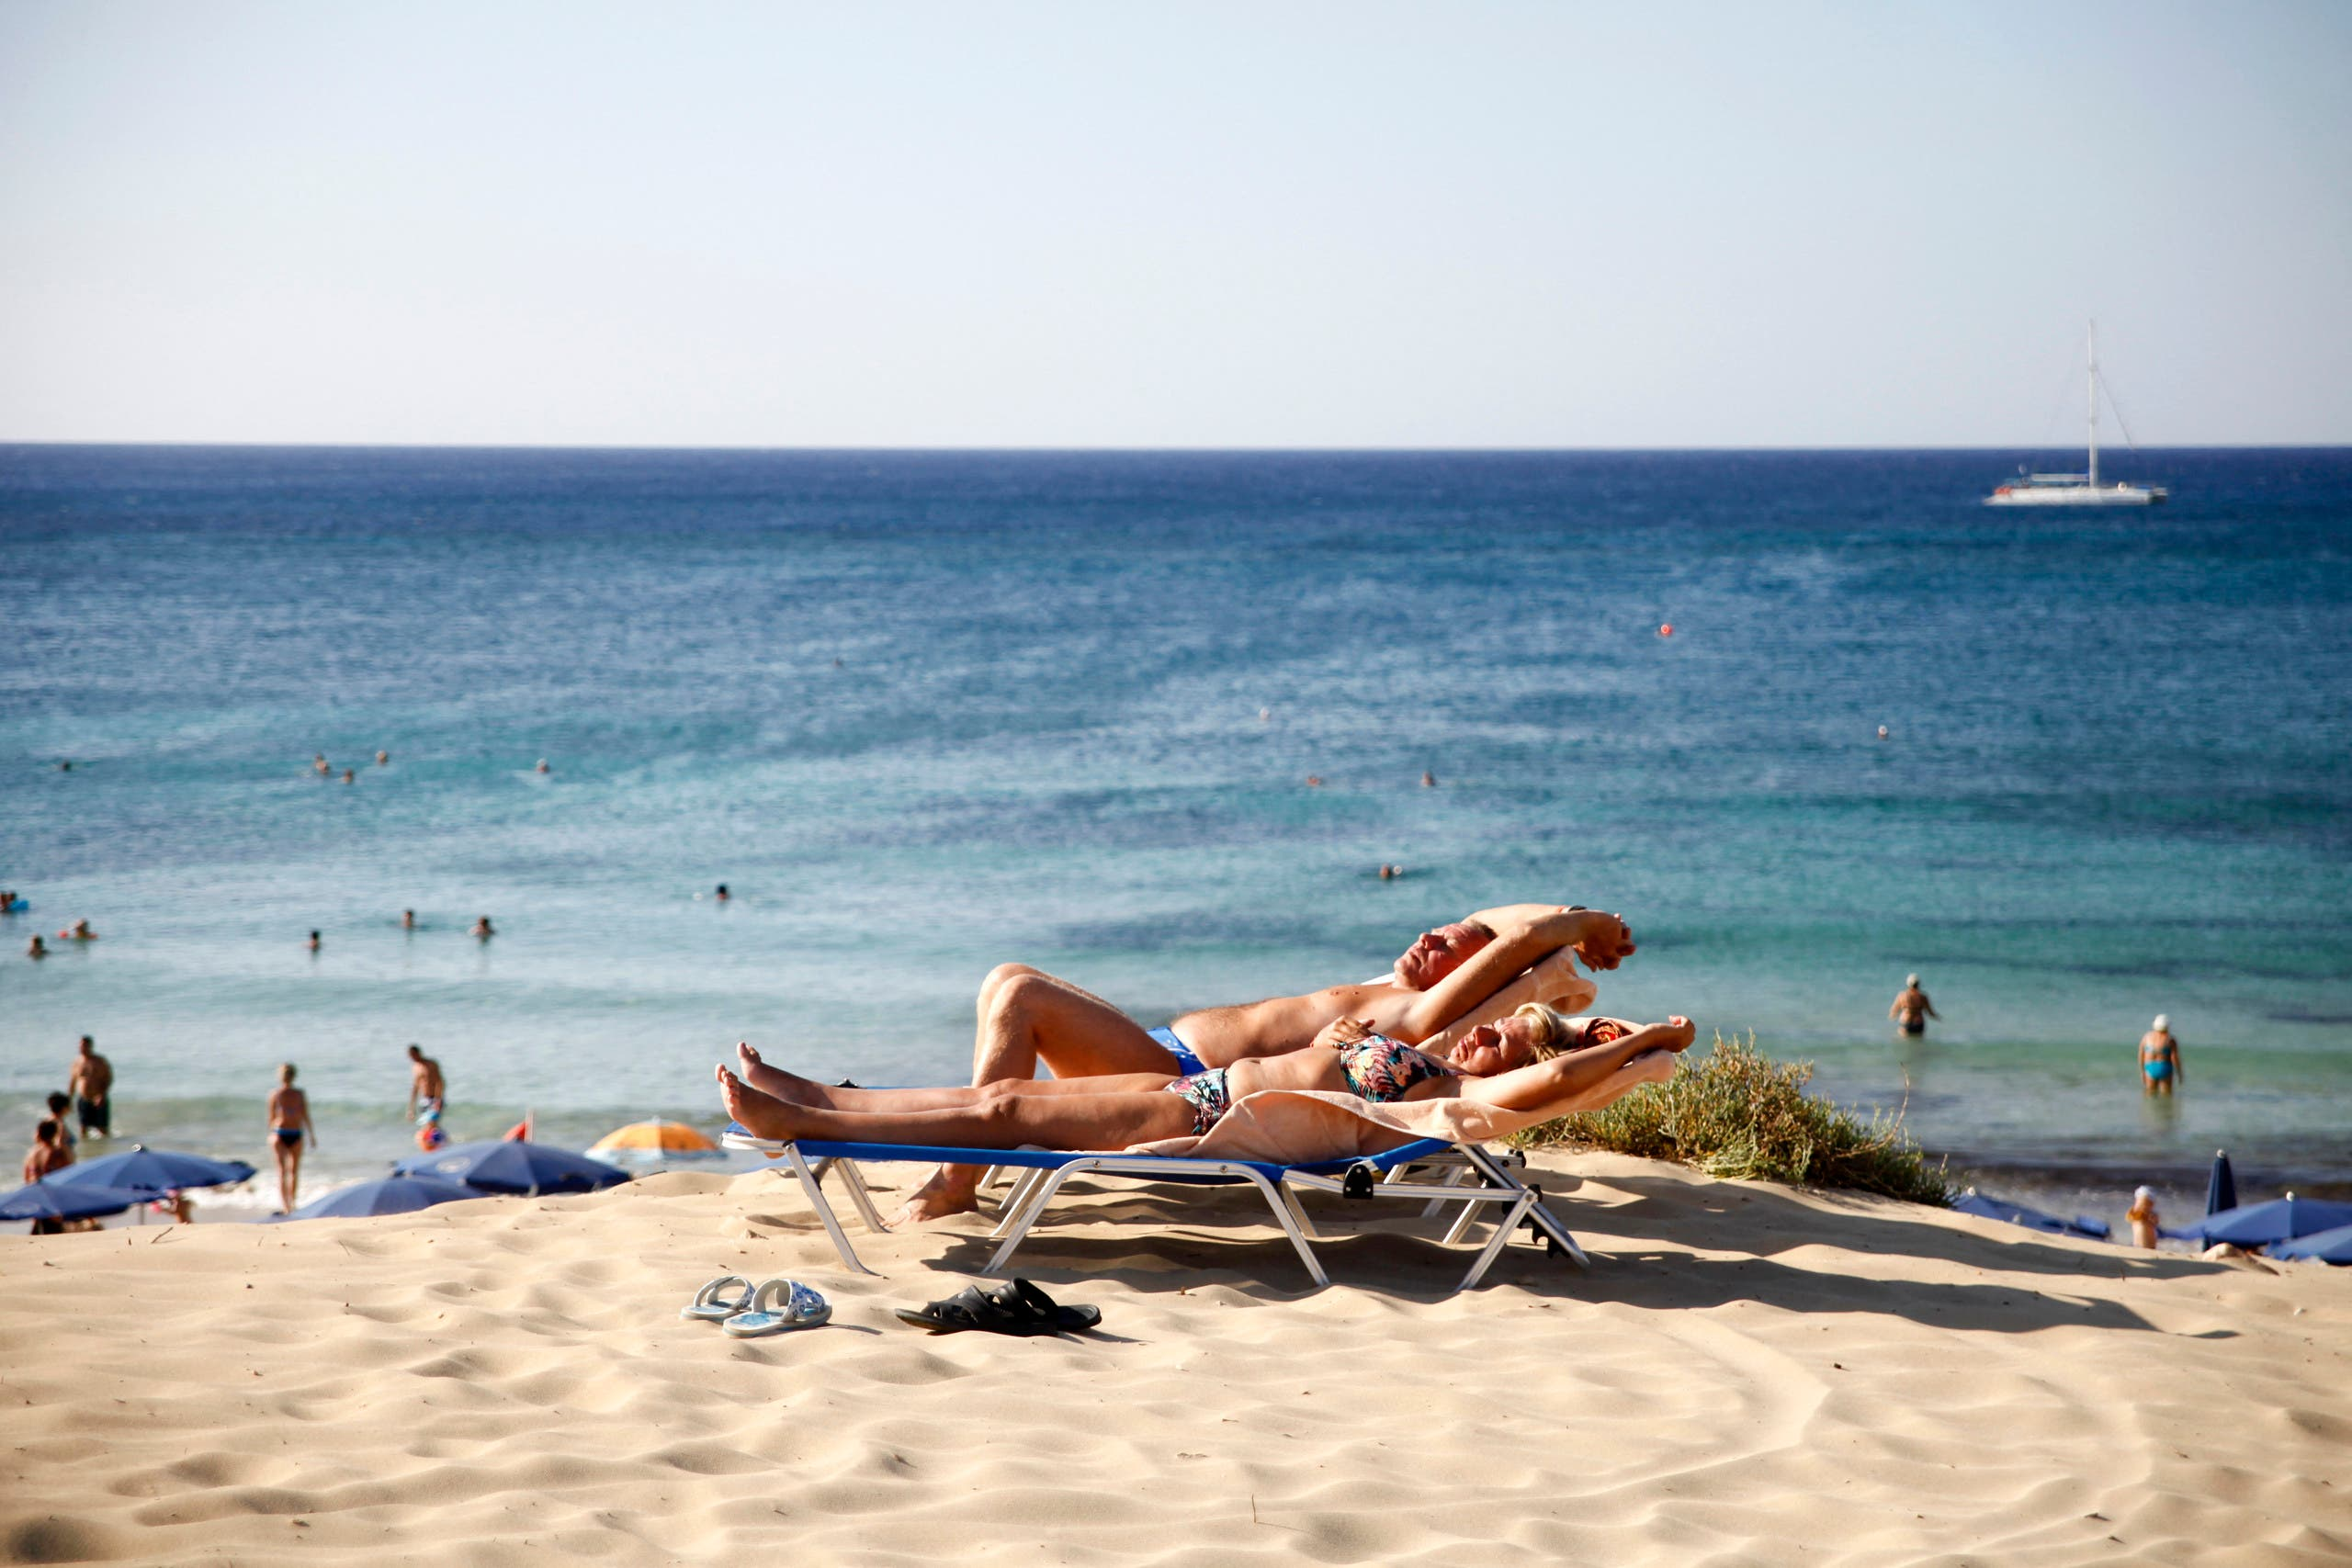 Tourists sunbathe at the beach in the resort town of Ayia Napa in southeastern Cyprus. (File photo: AFP)